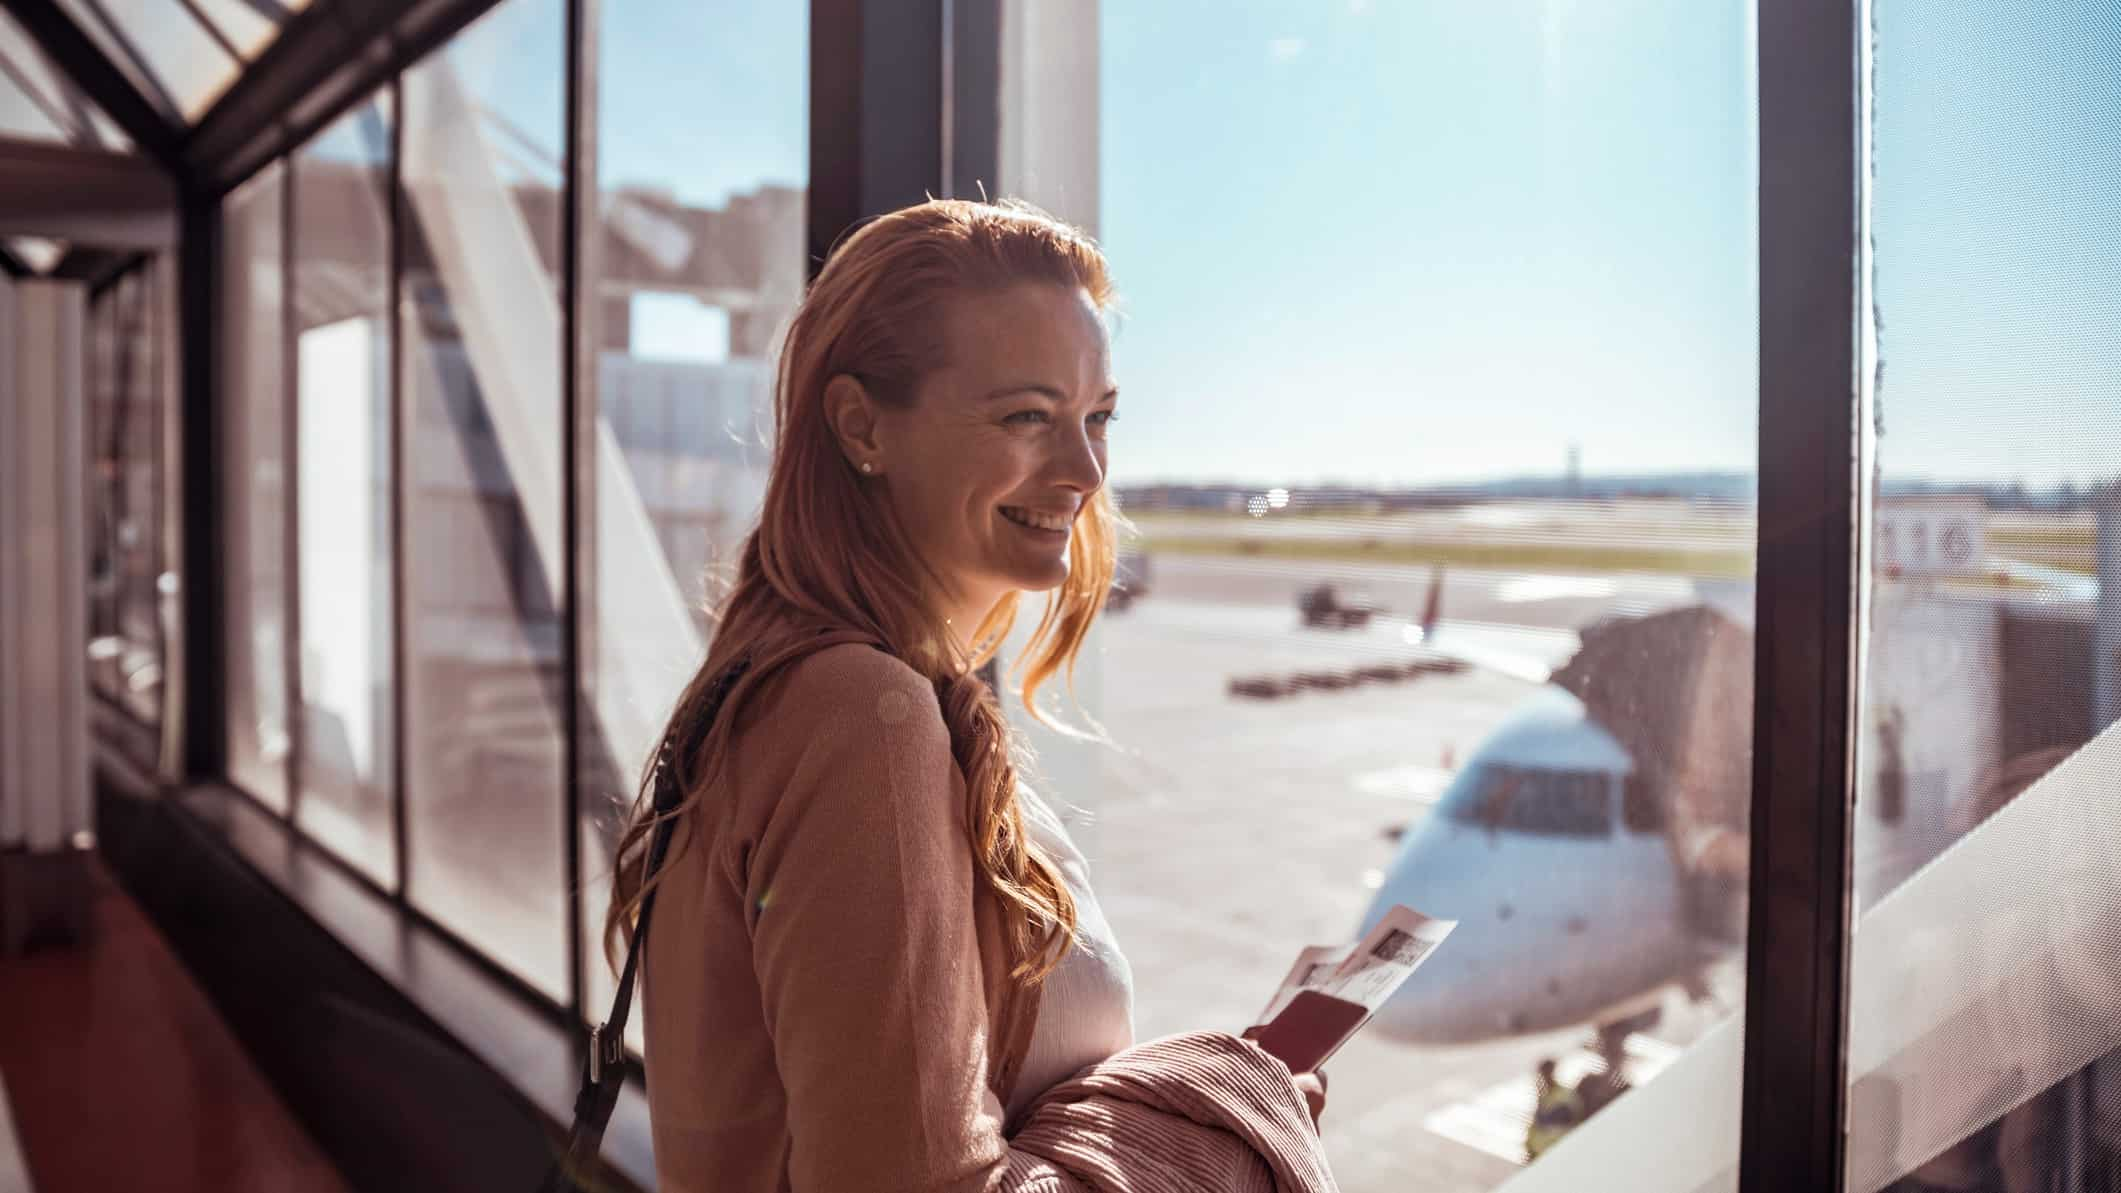 A female traveller stands in the terminal, ready to board her plane.